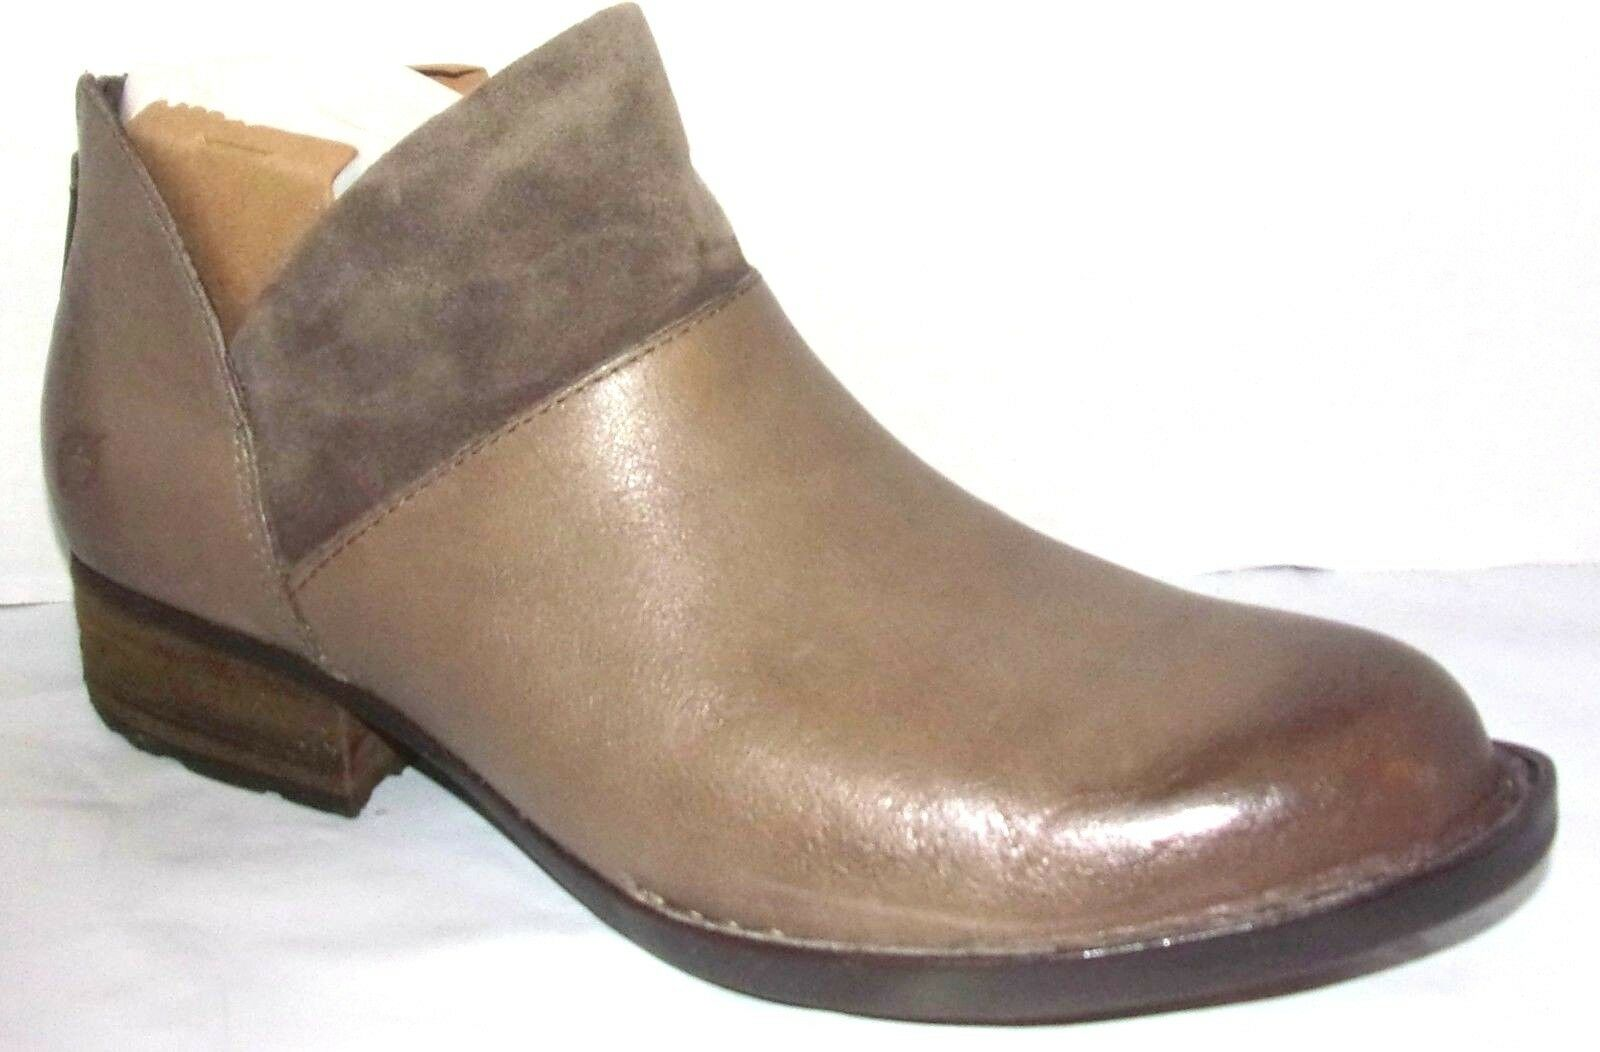 NIB Born Karava Taupe Light Grey Leather & Suede Combo Ankle Boots 6.5 M